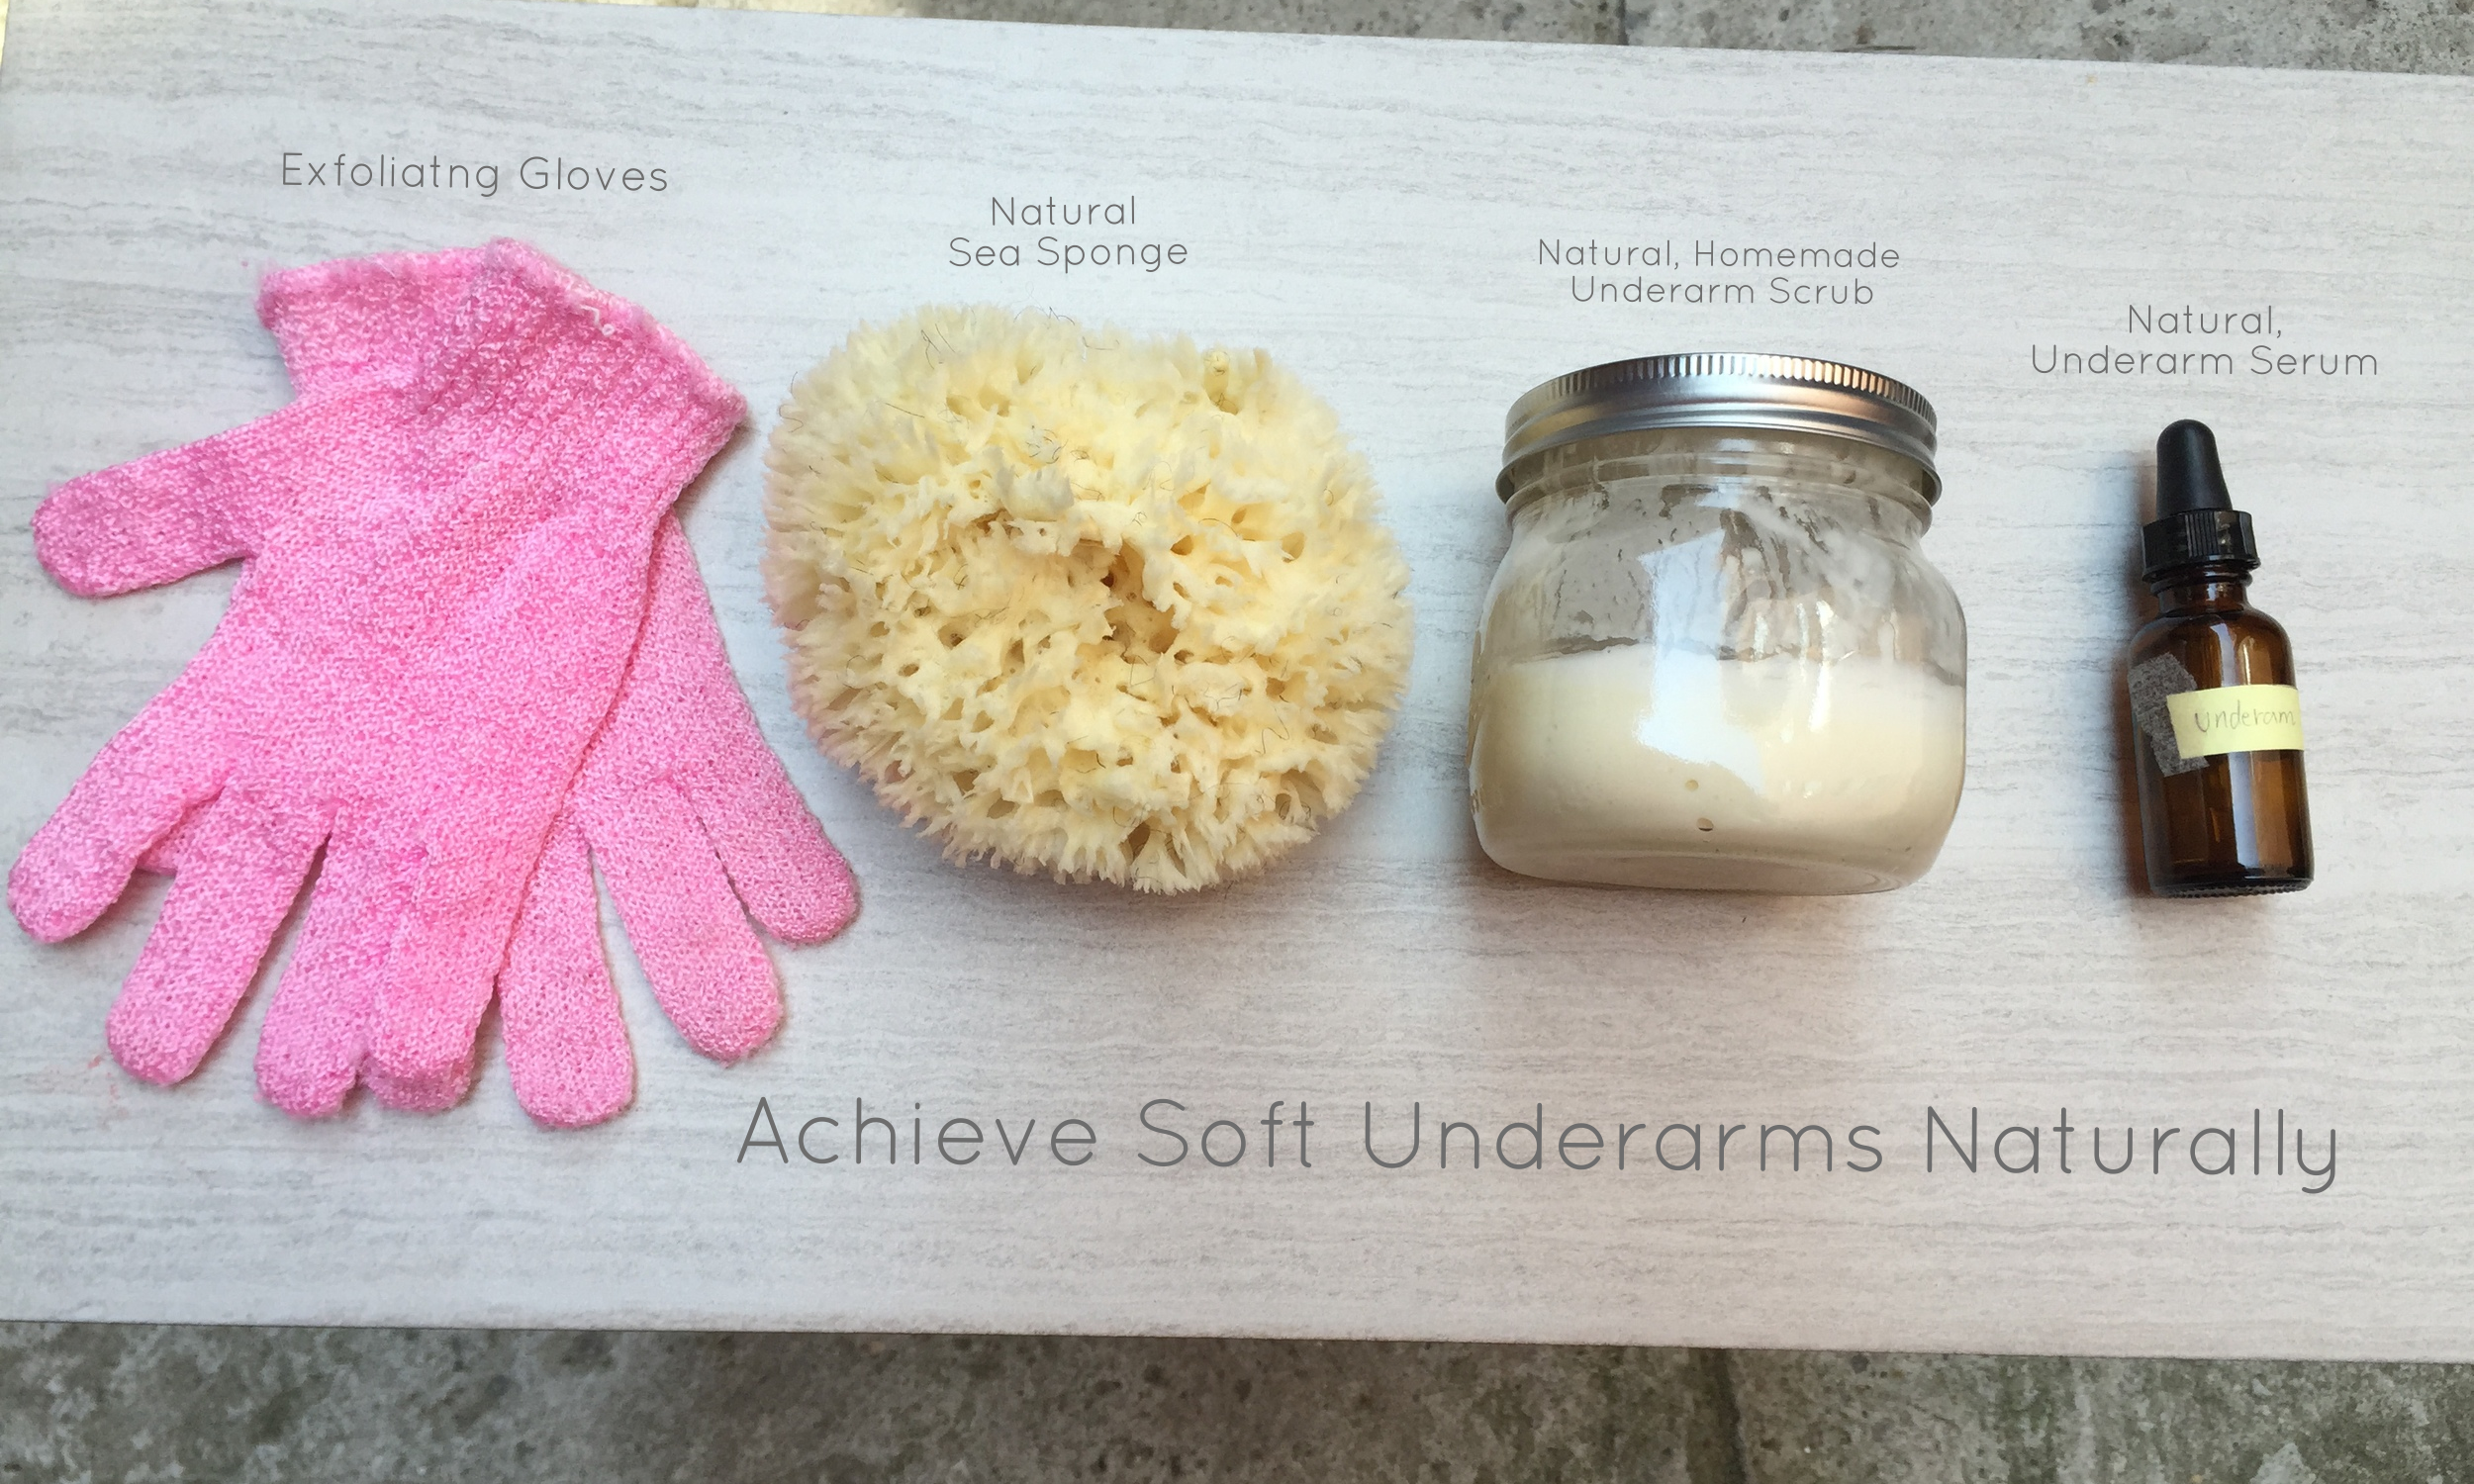 Ingredients for softer, smoother underarms